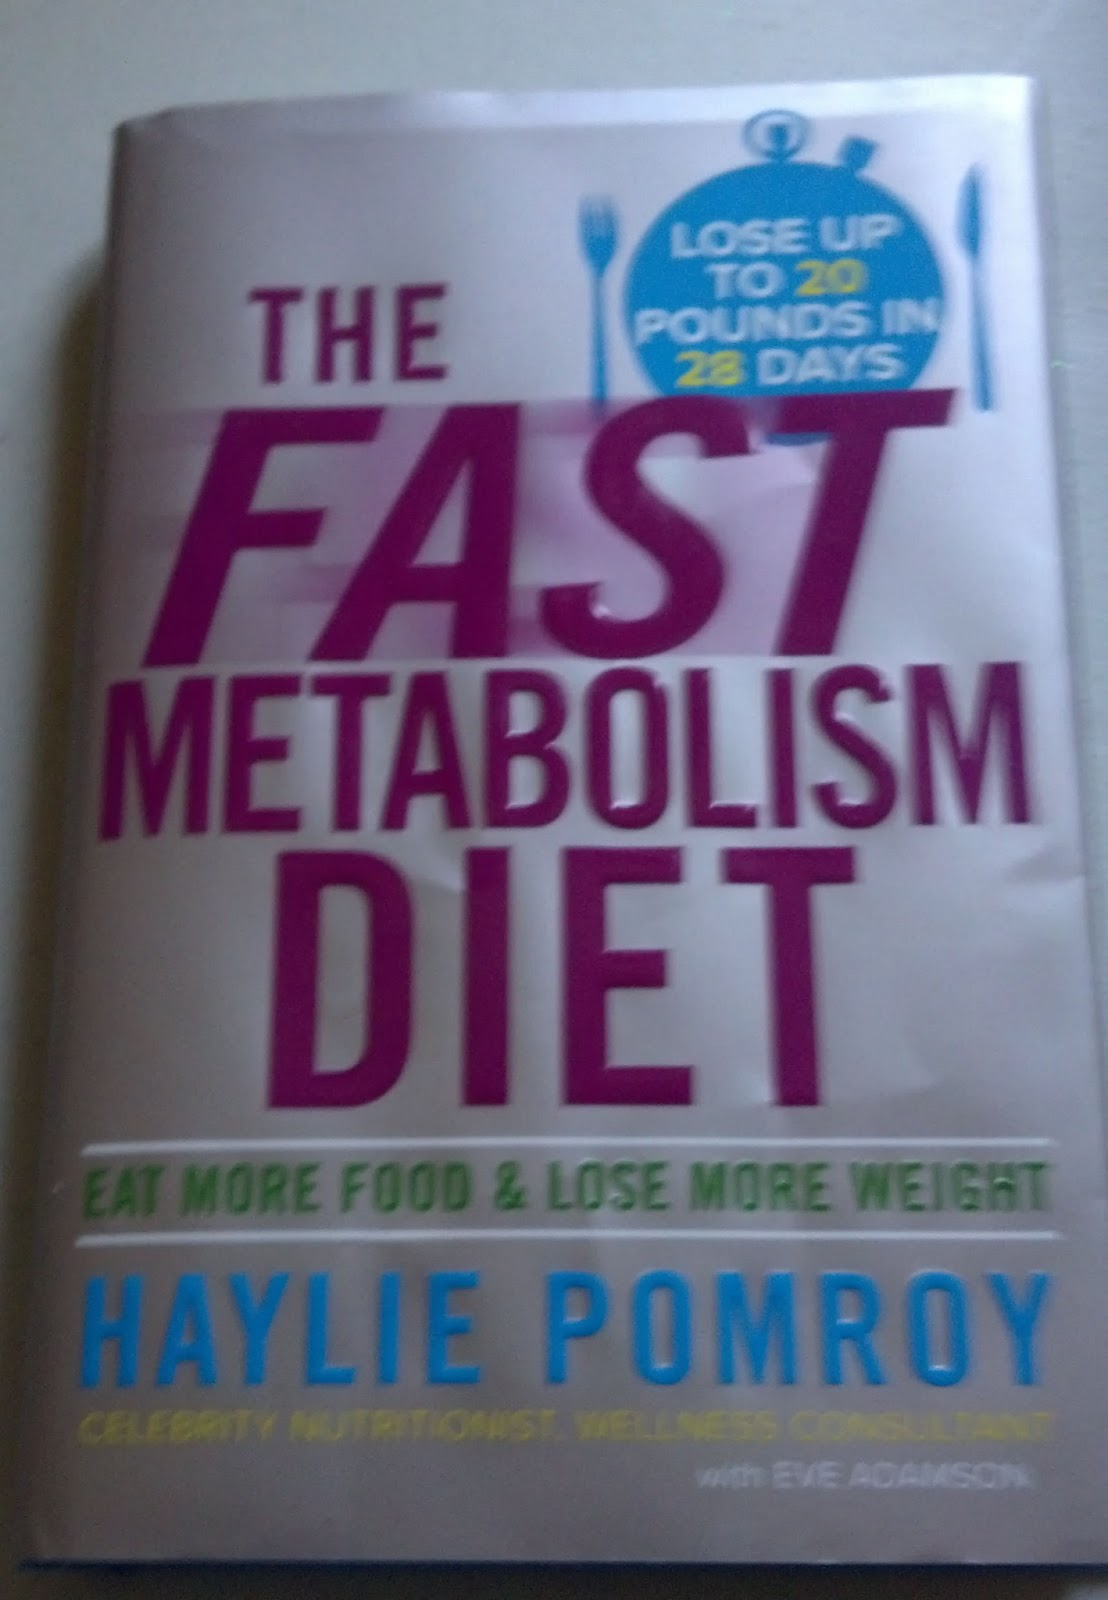 Fast metabolism diet reviews - I Was Given The Opportunity By Shespeaks To Try The Fast Metabolism Diet By Haylie Pomroy In Exchange For My Review Cool Cover Eh